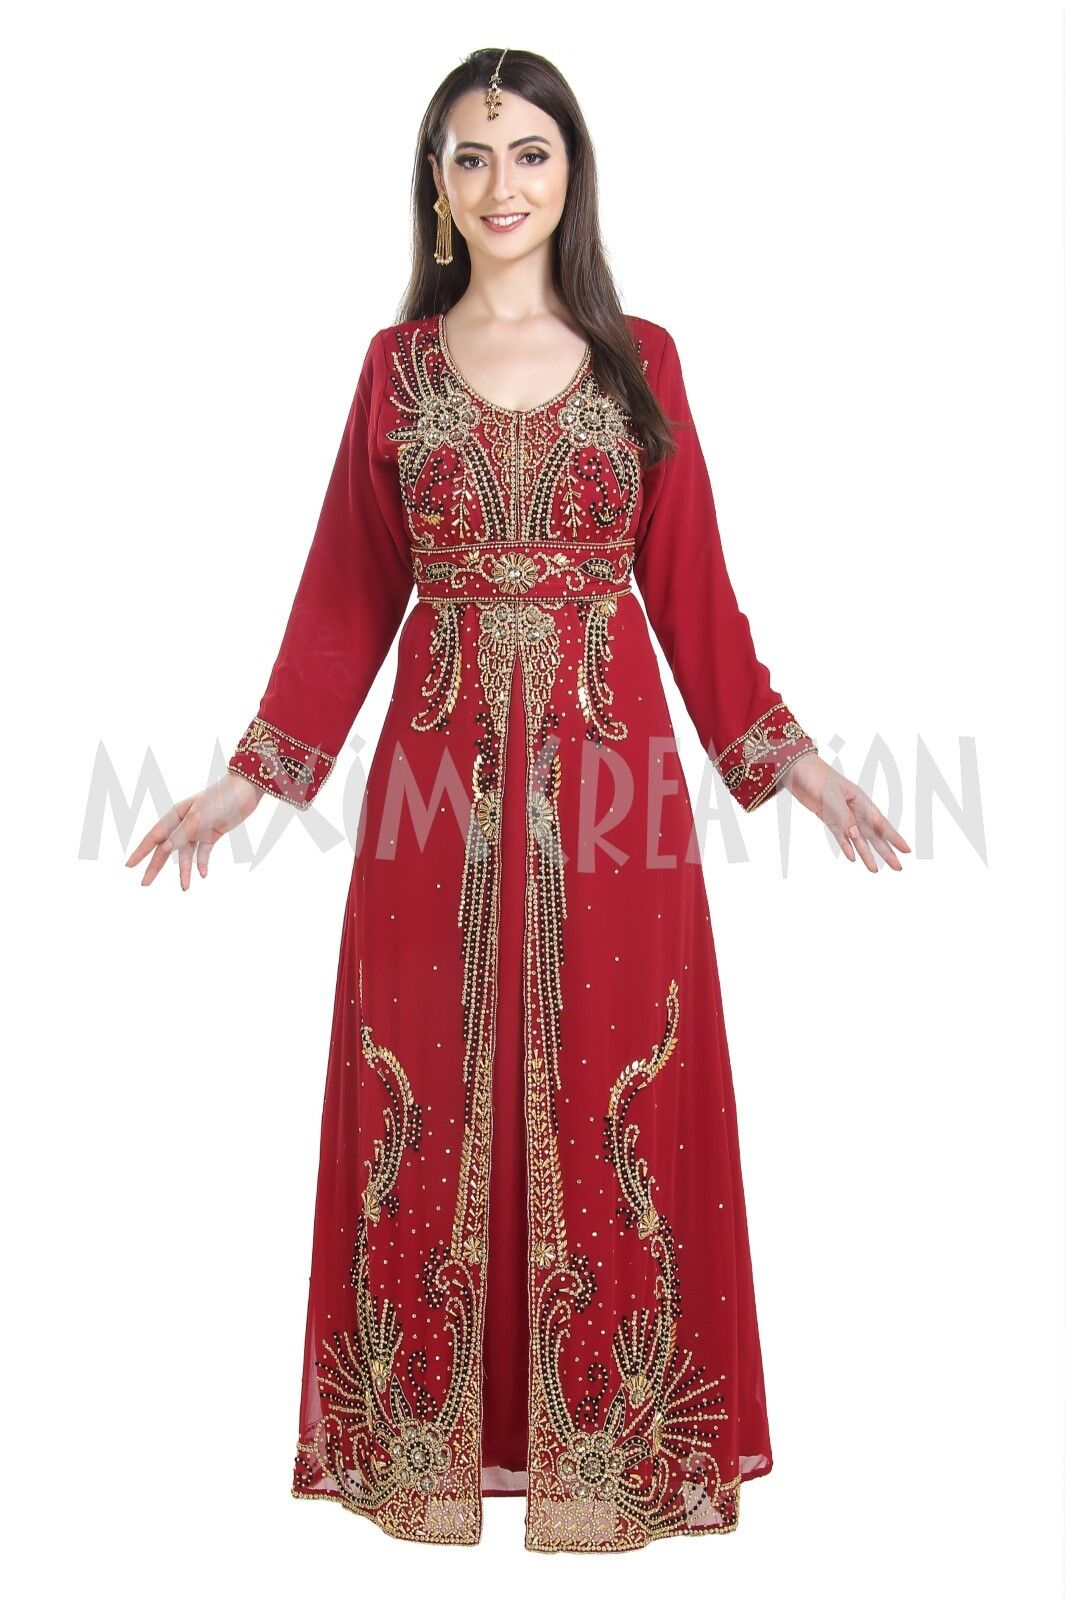 Princess Style Unique Hand Embroidered Western Gown Party Wear Caftan 7197